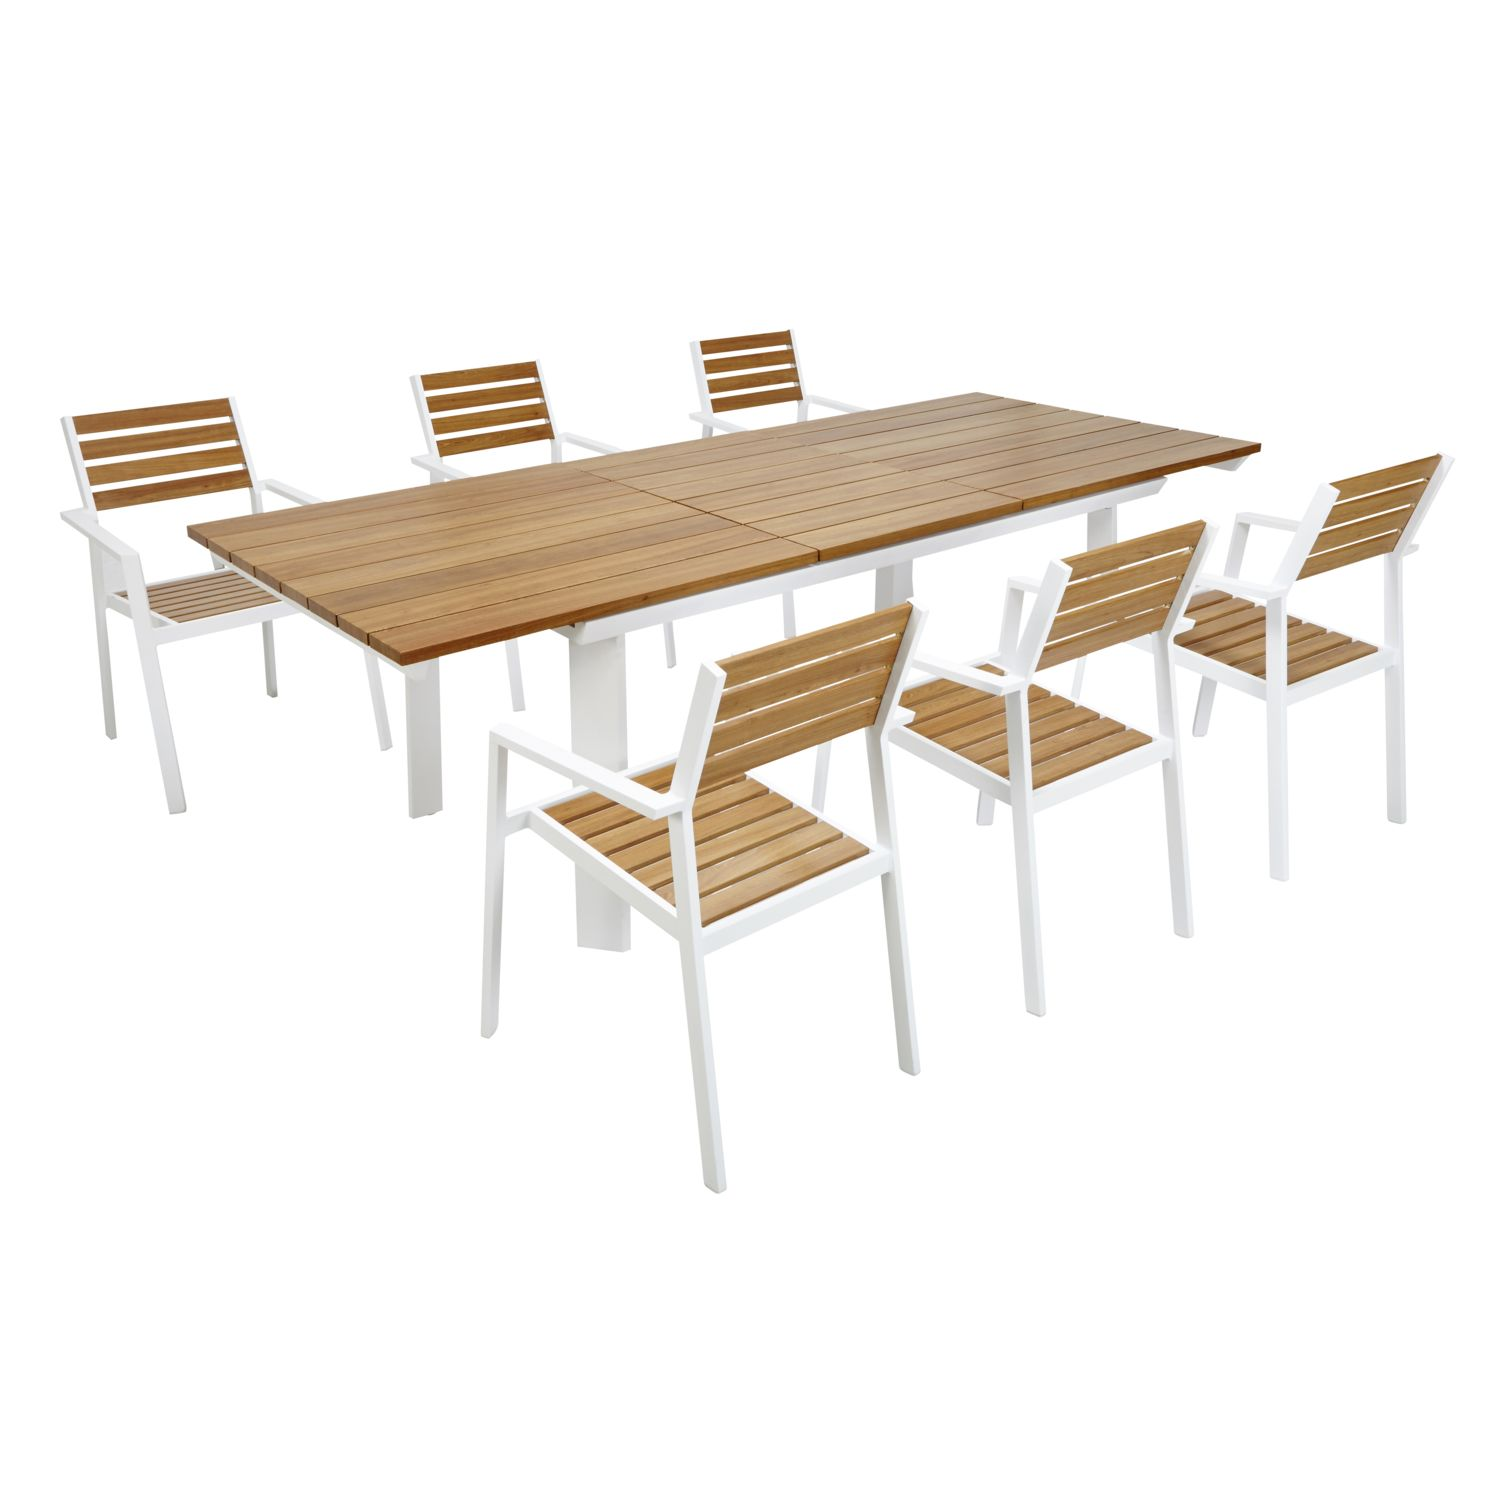 Table Rectangulaire Pas Cher Table Rectangulaire Pas Cher Dayton Table Rectangulaire